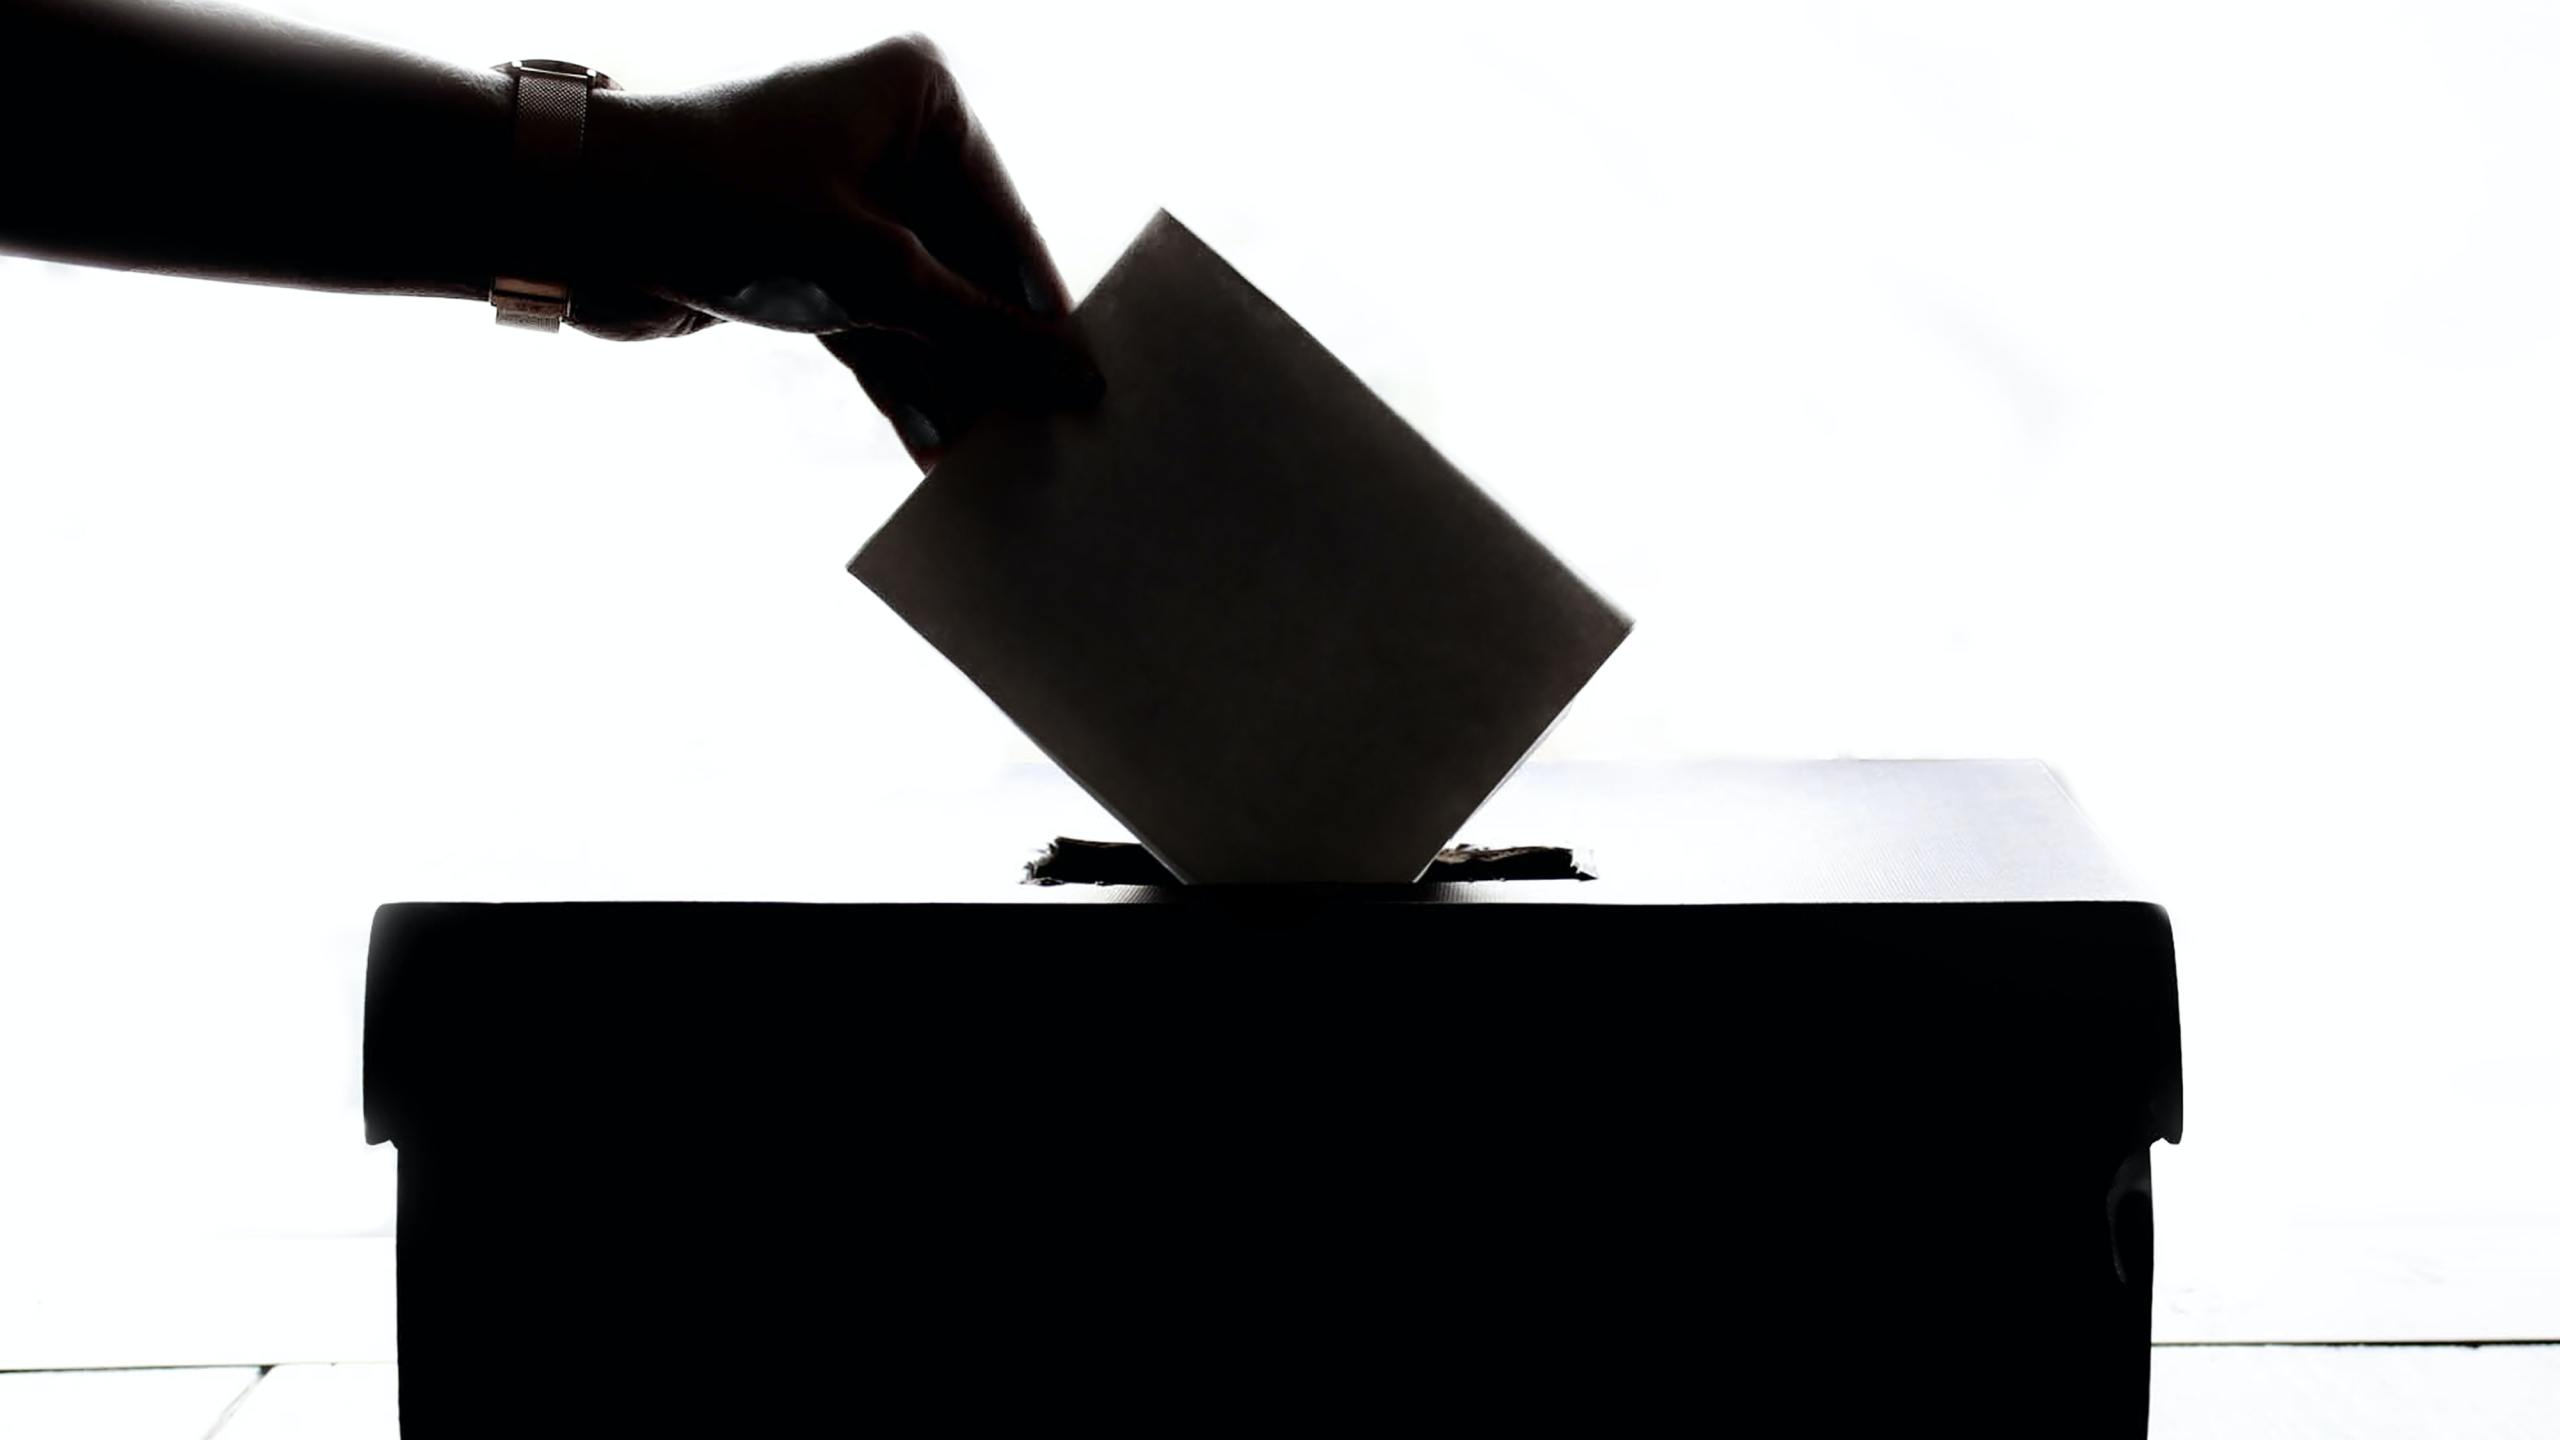 Hand dropping vote in ballot box